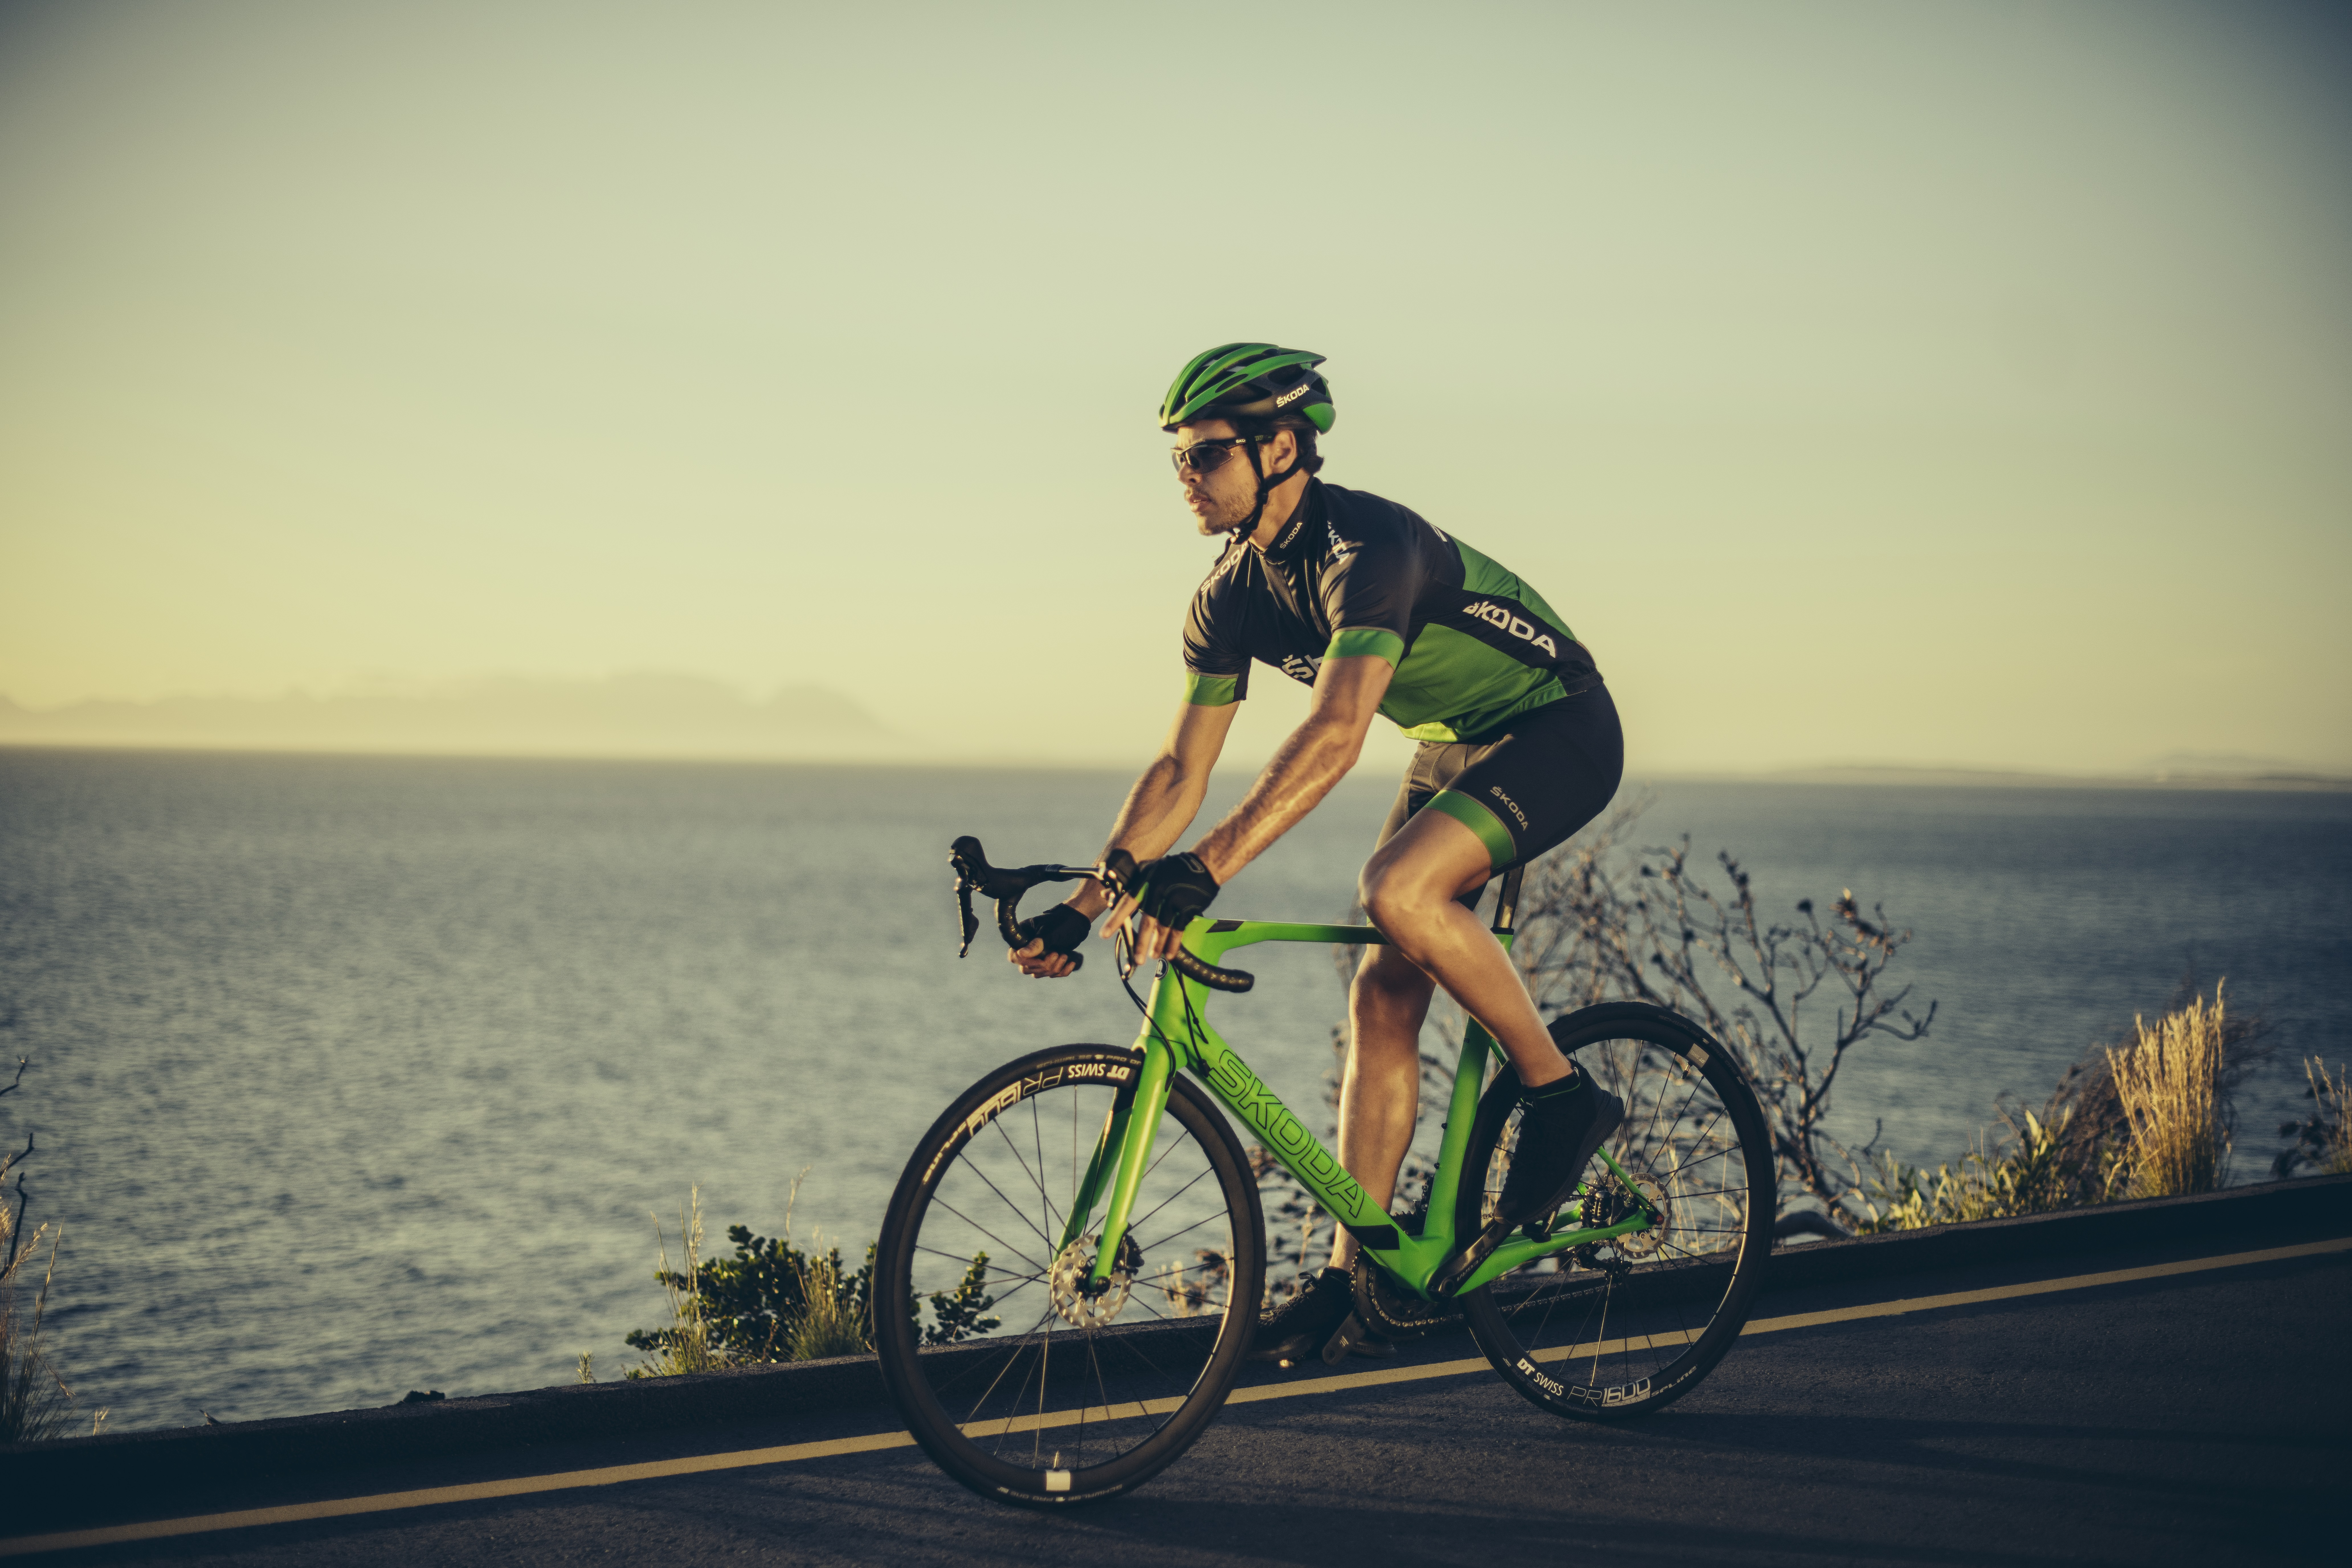 World Bicycle Day 2020 and SKODA: A tradition of excellence on two wheels, too - Image 3